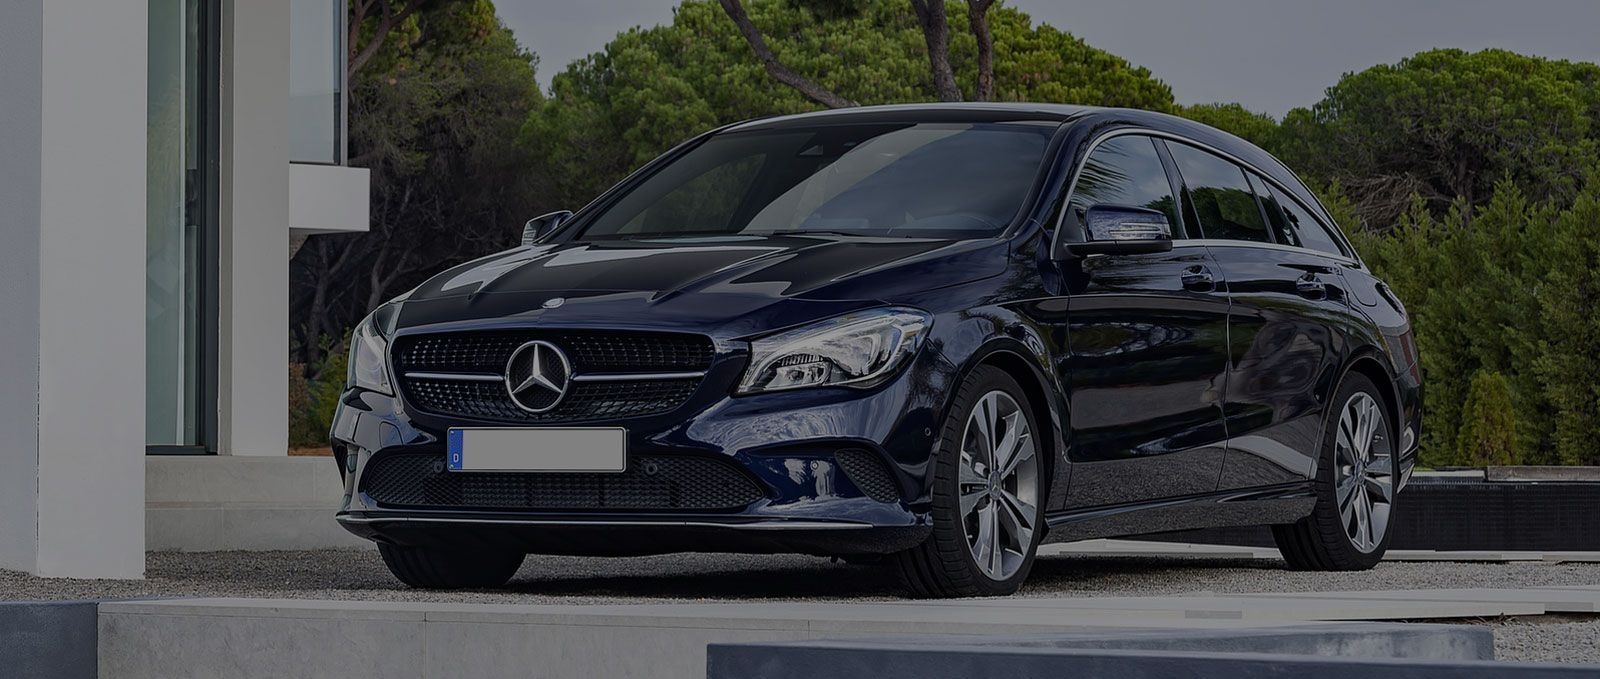 Reconditioned low mileage Mercedes CLA engines for sale at